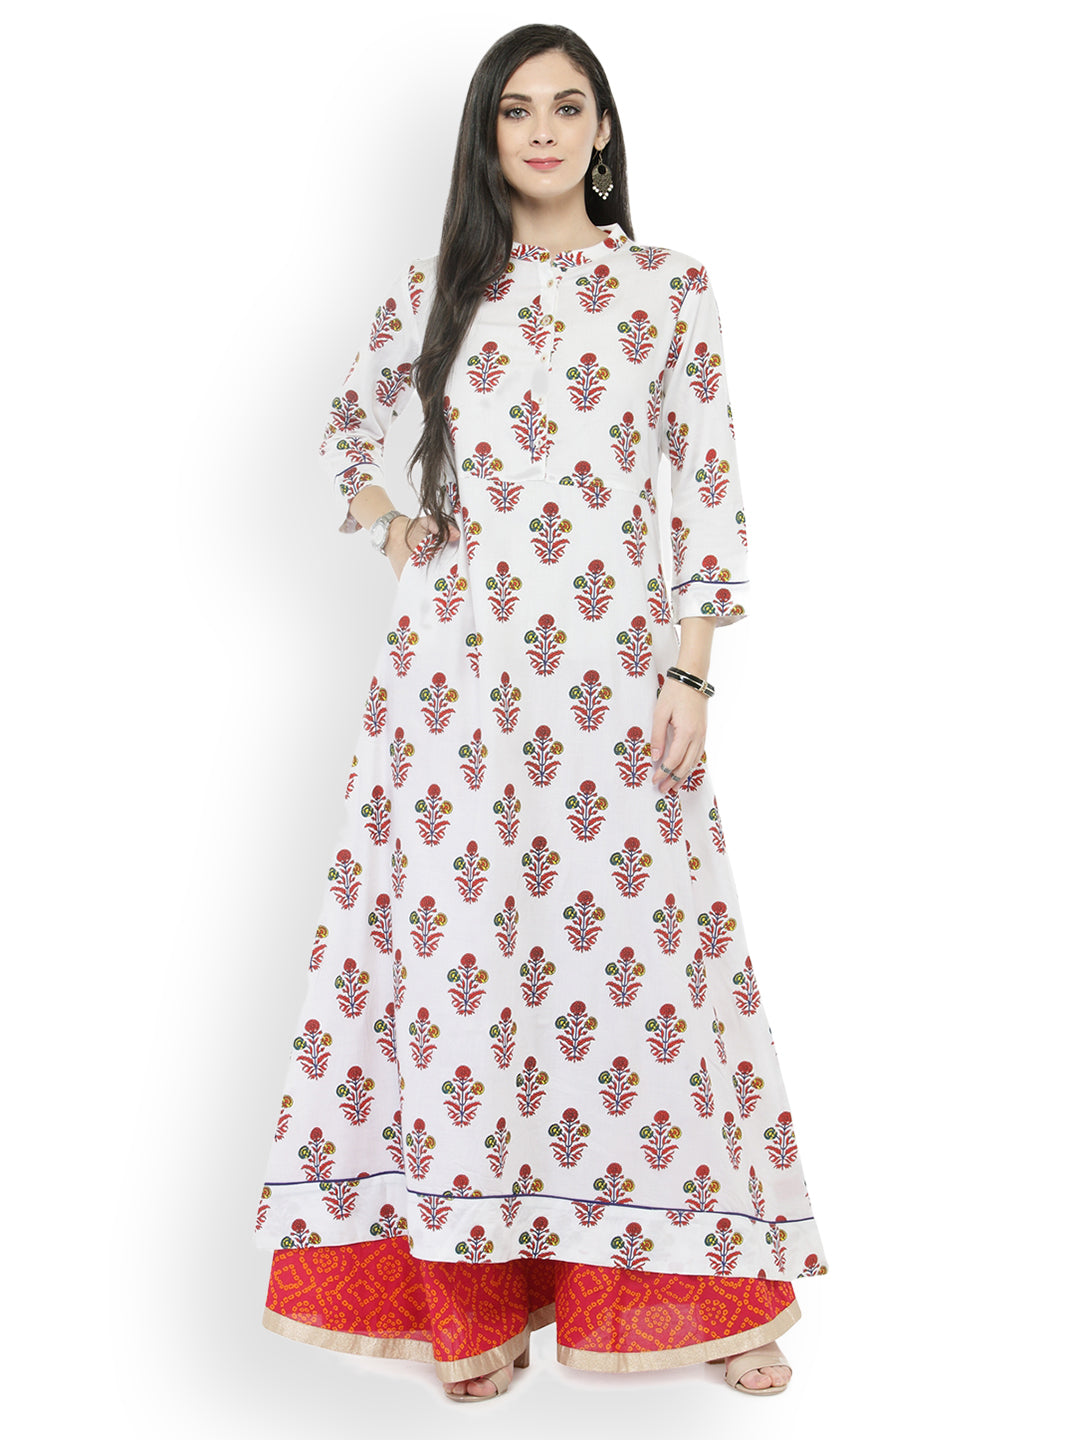 https://ladyindia.com/products/buy-now-floral-print-long-anarkalis-white-floral-printed-long-kurta-with-palazzos?variant=7878391726124